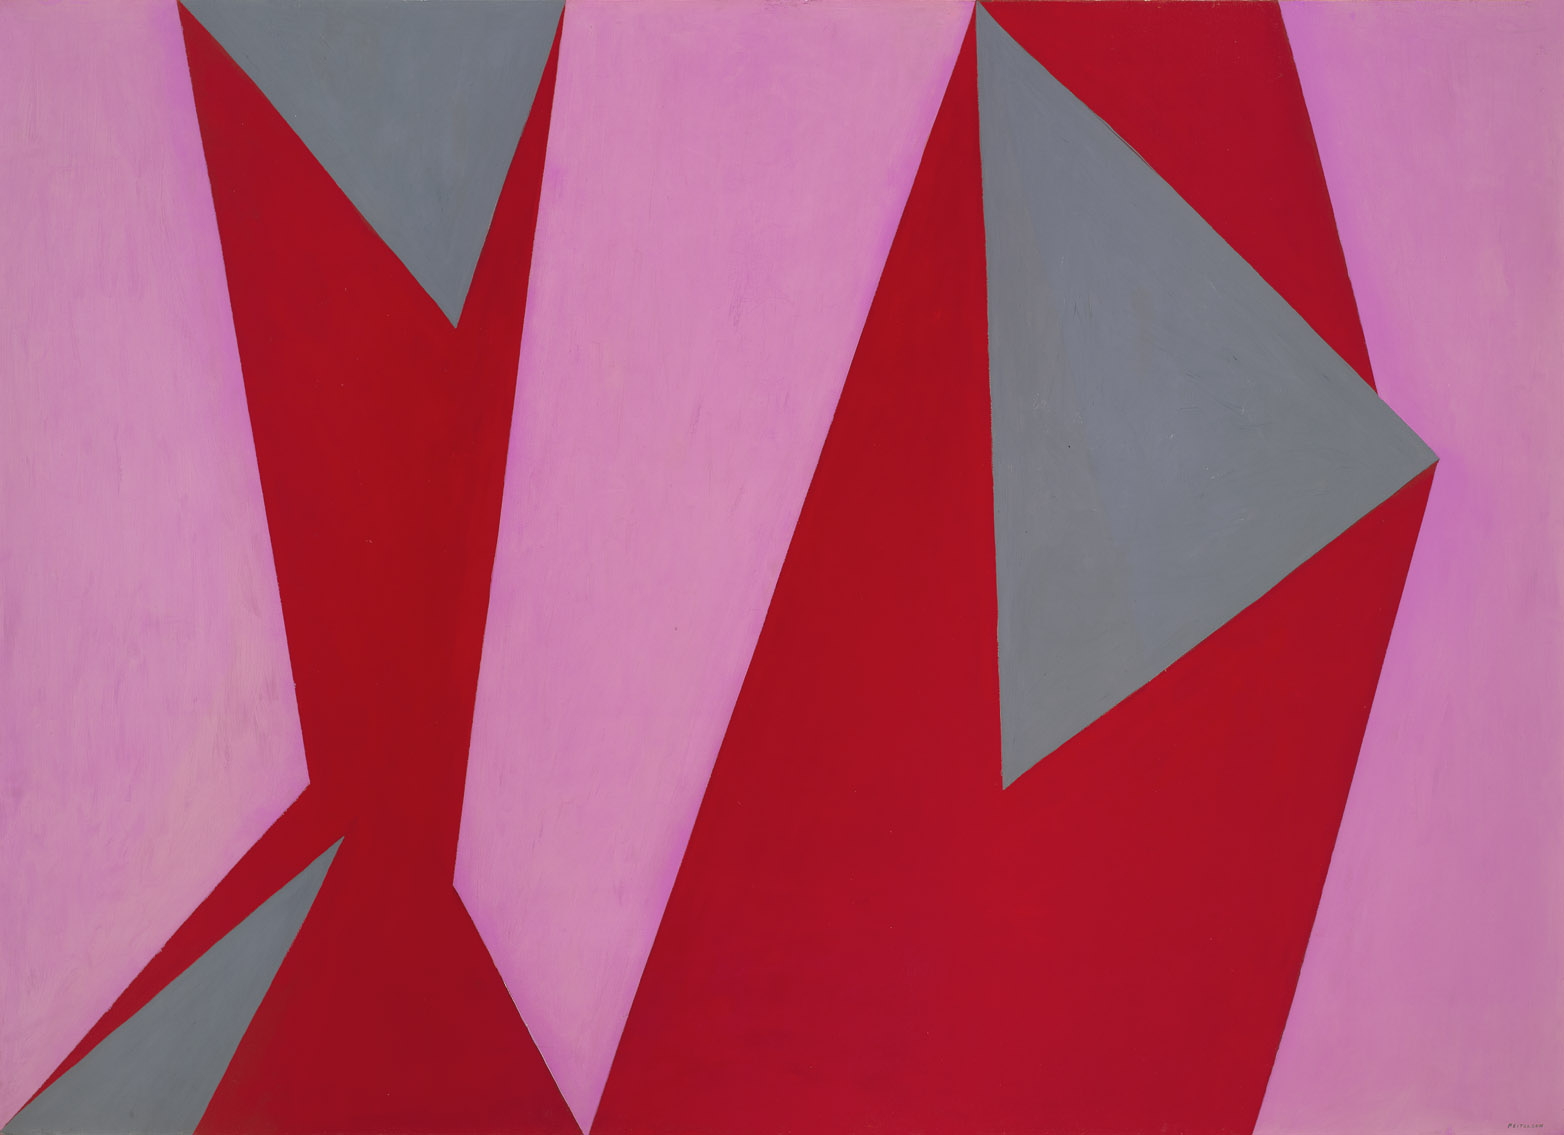 Magical Space Forms , 1951  oil on canvas 58 x 82 inches; 147.3 x 208.3 centimeters